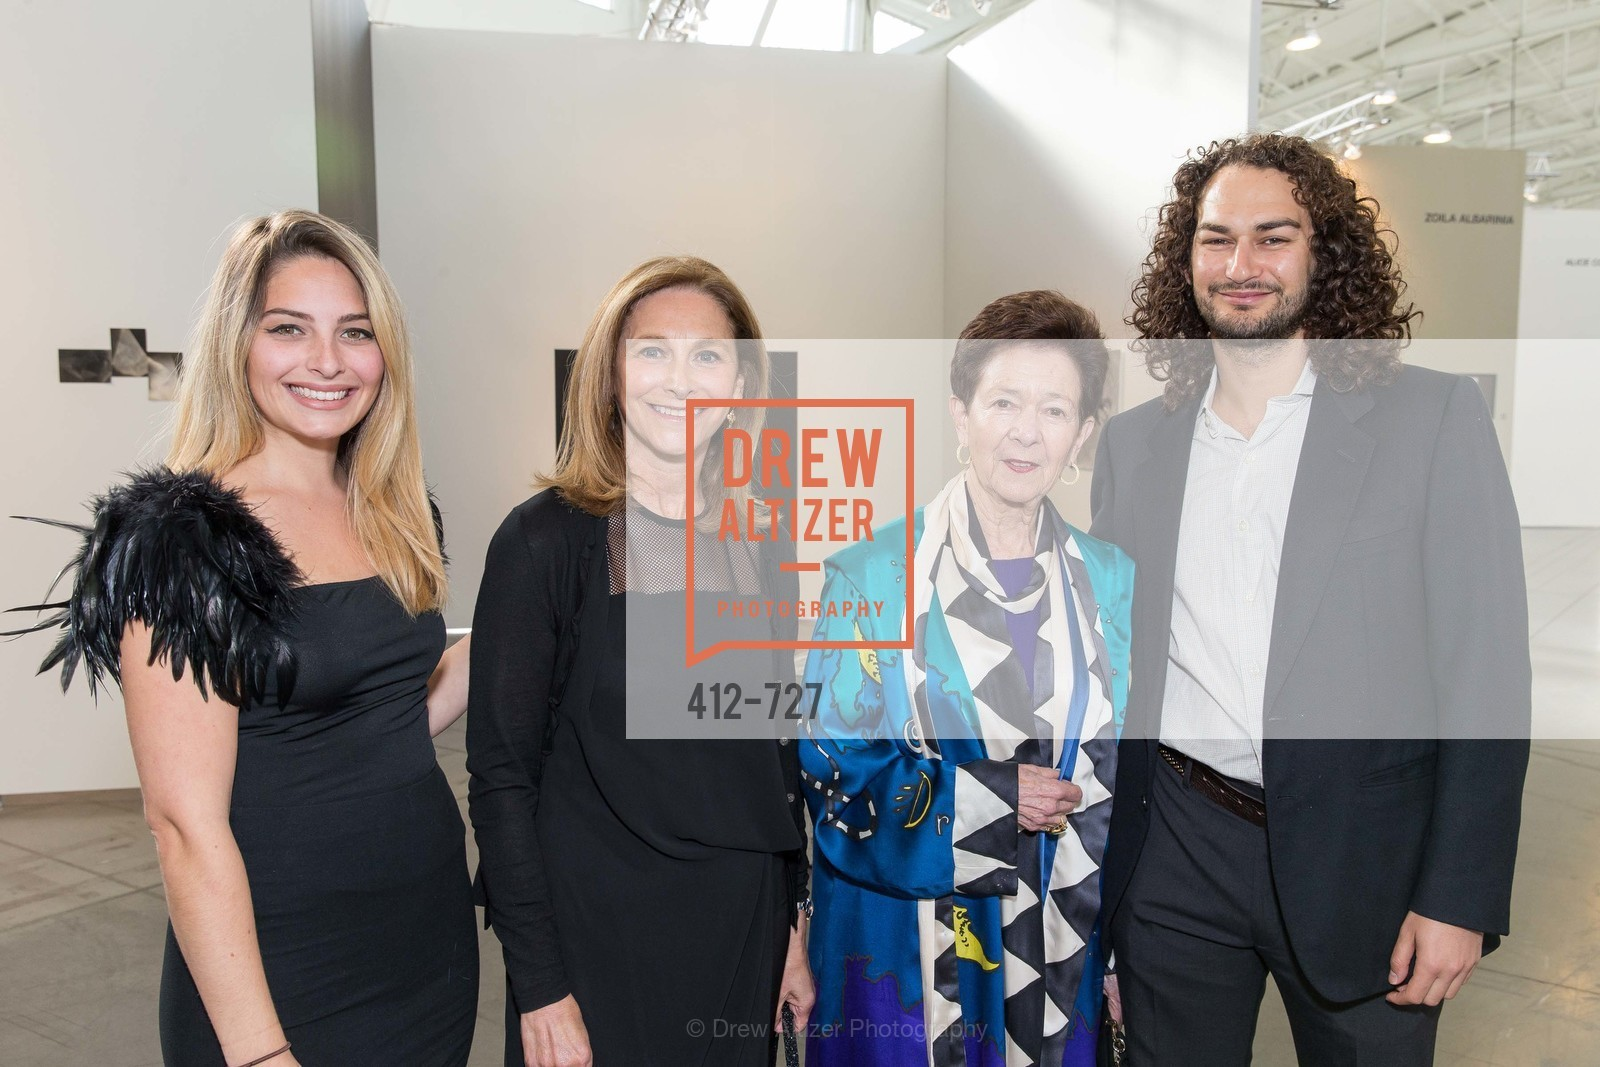 Jordan Arendas, Sari Swig, Cissie Swig, Adam Swig, SAN FRANCISCO ART INSTITUTE Gala Honoring Art Visionary and Advocate ROSELYNE CHROMAN SWIG, US, May 14th, 2015,Drew Altizer, Drew Altizer Photography, full-service agency, private events, San Francisco photographer, photographer california